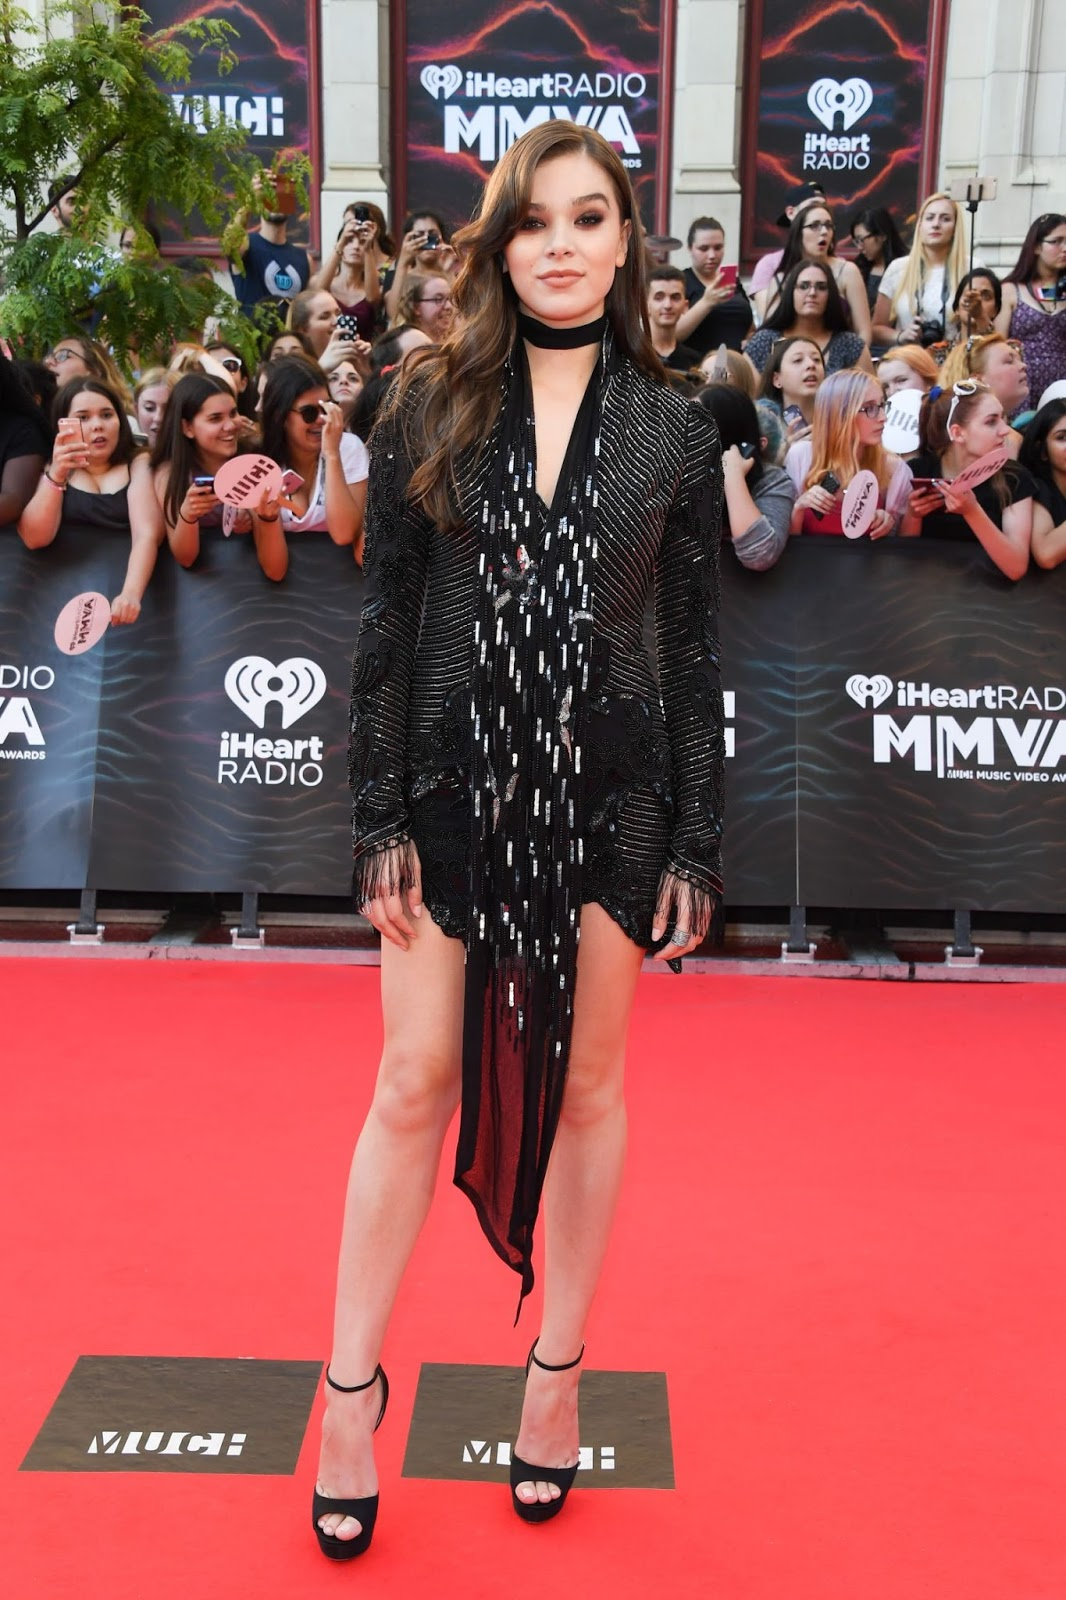 Hailee Steinfeld flaunts legs at the MuchMusic Video Awards 2016 in Toronto